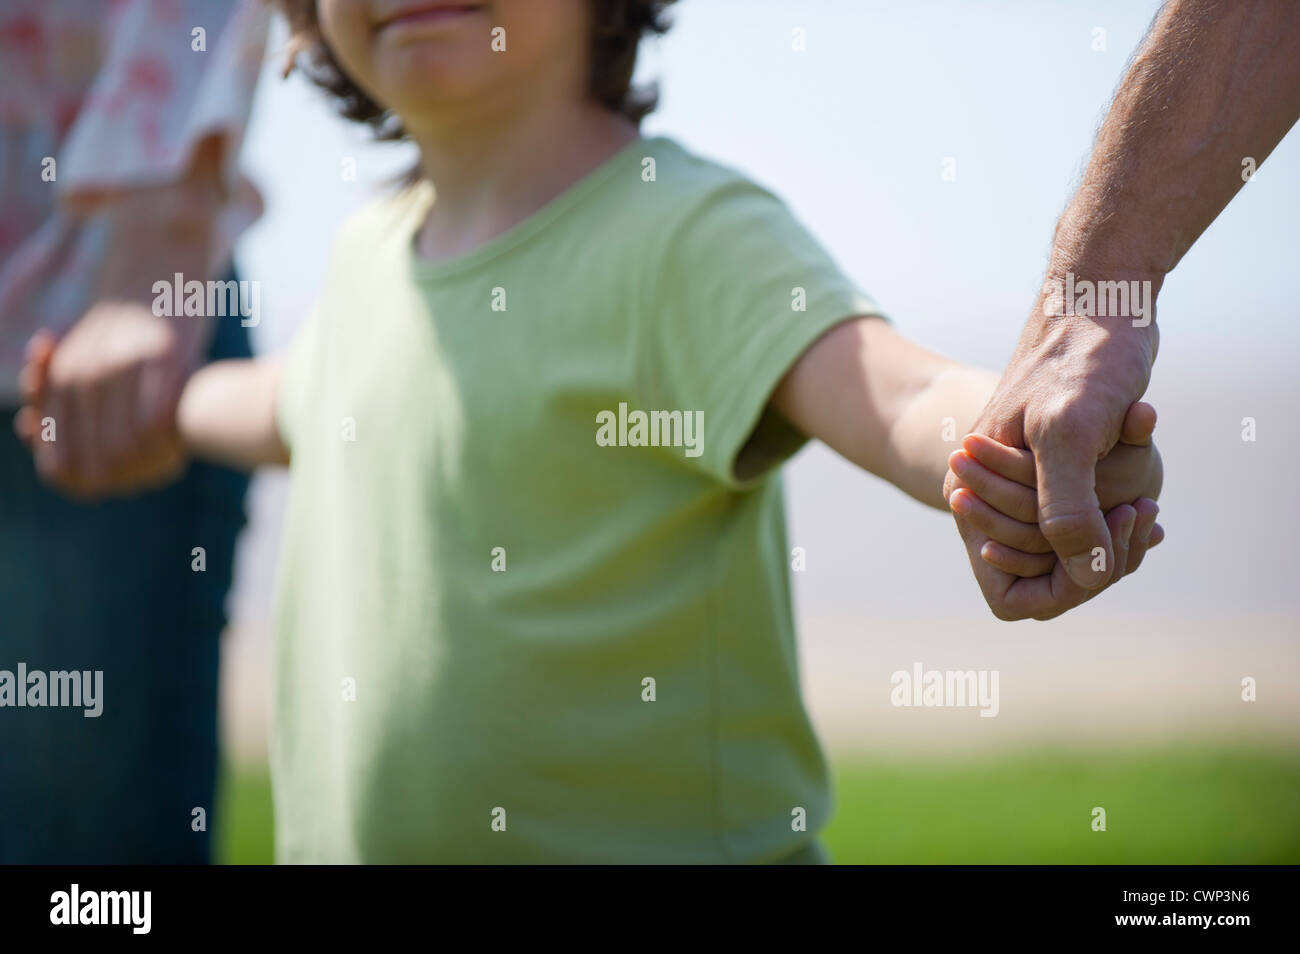 Boy holding hands with parents, cropped Photo Stock